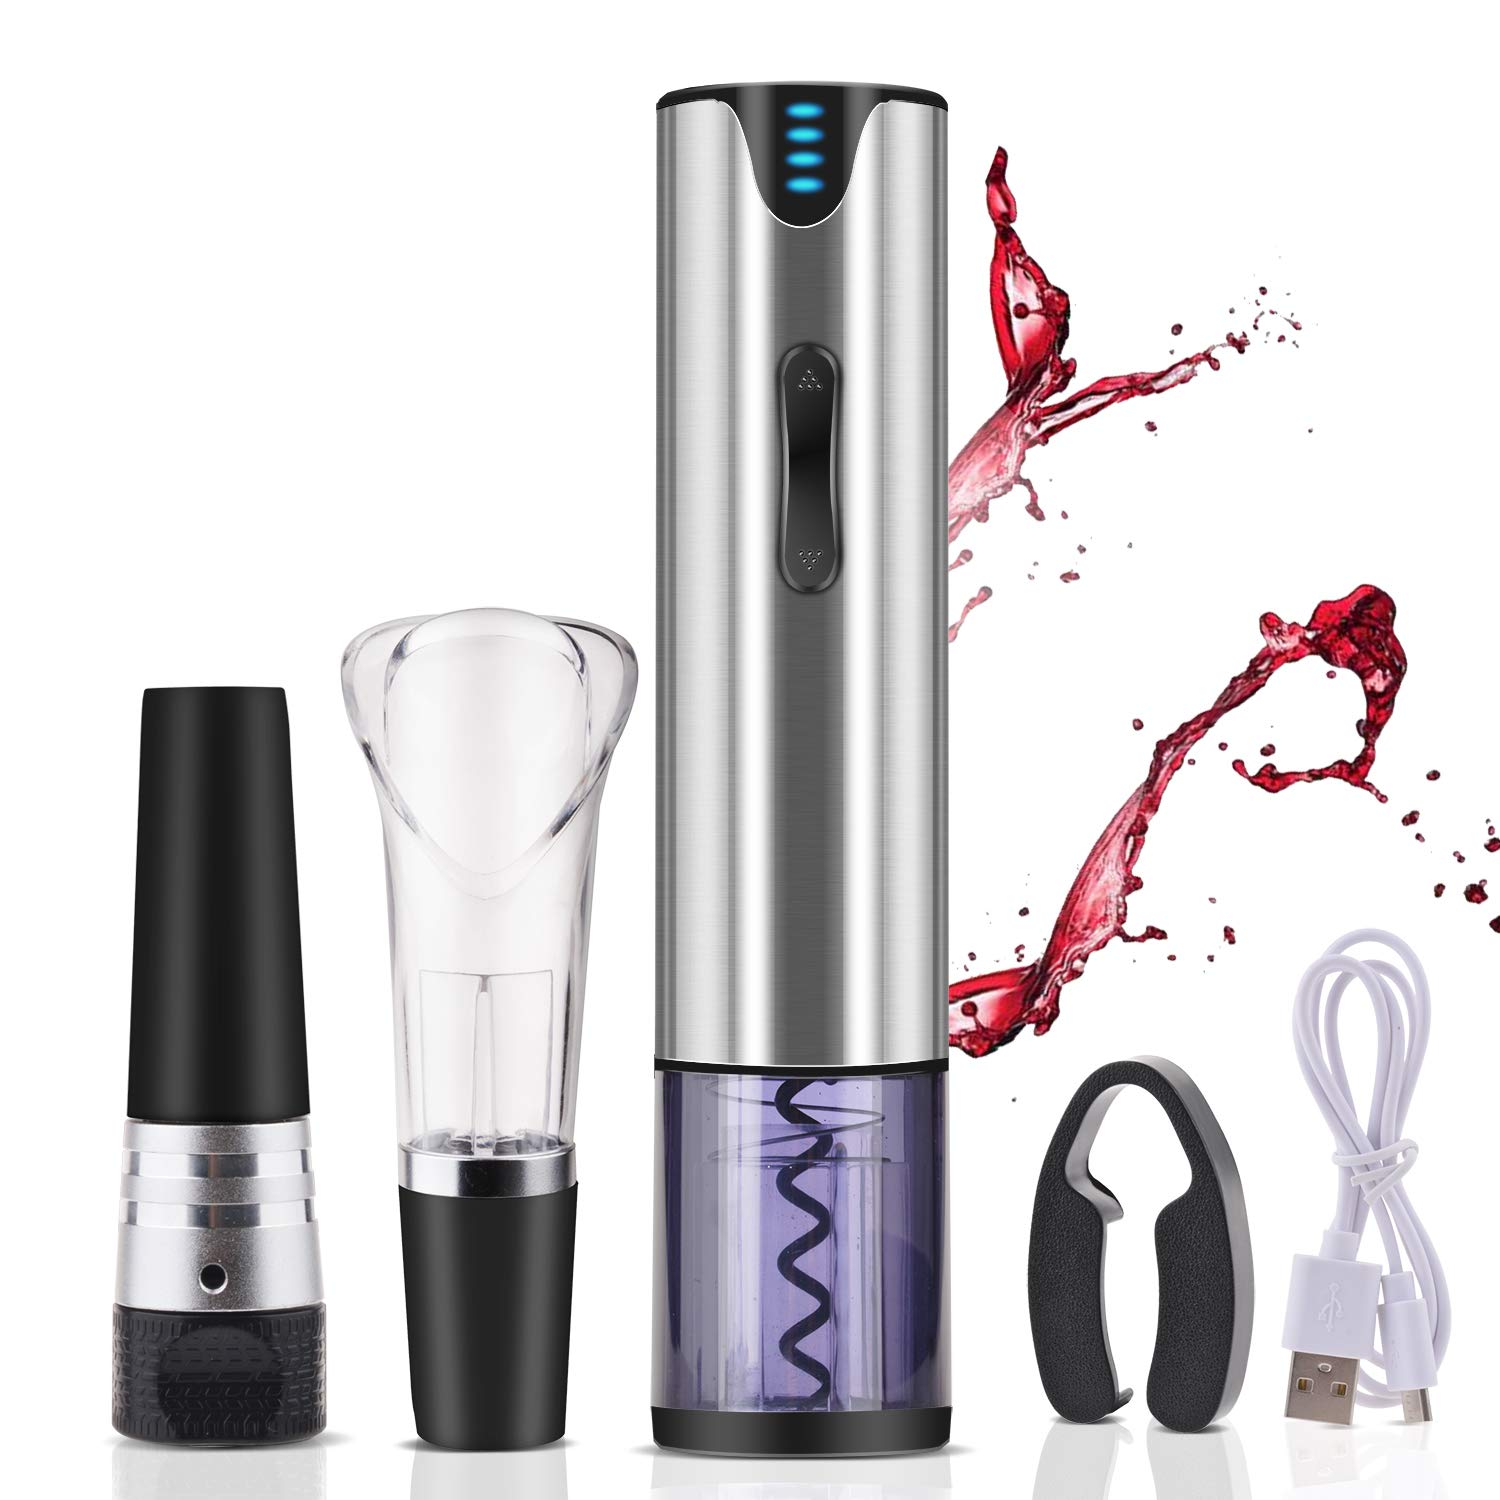 Web Bee Electric Wine Opener Rechargeable,Automatic Wine Bottle Openers with Premium Vacuum, Wine Opener,Pourer,Foil Cutter and USB Recharging Interface.Gift Kit